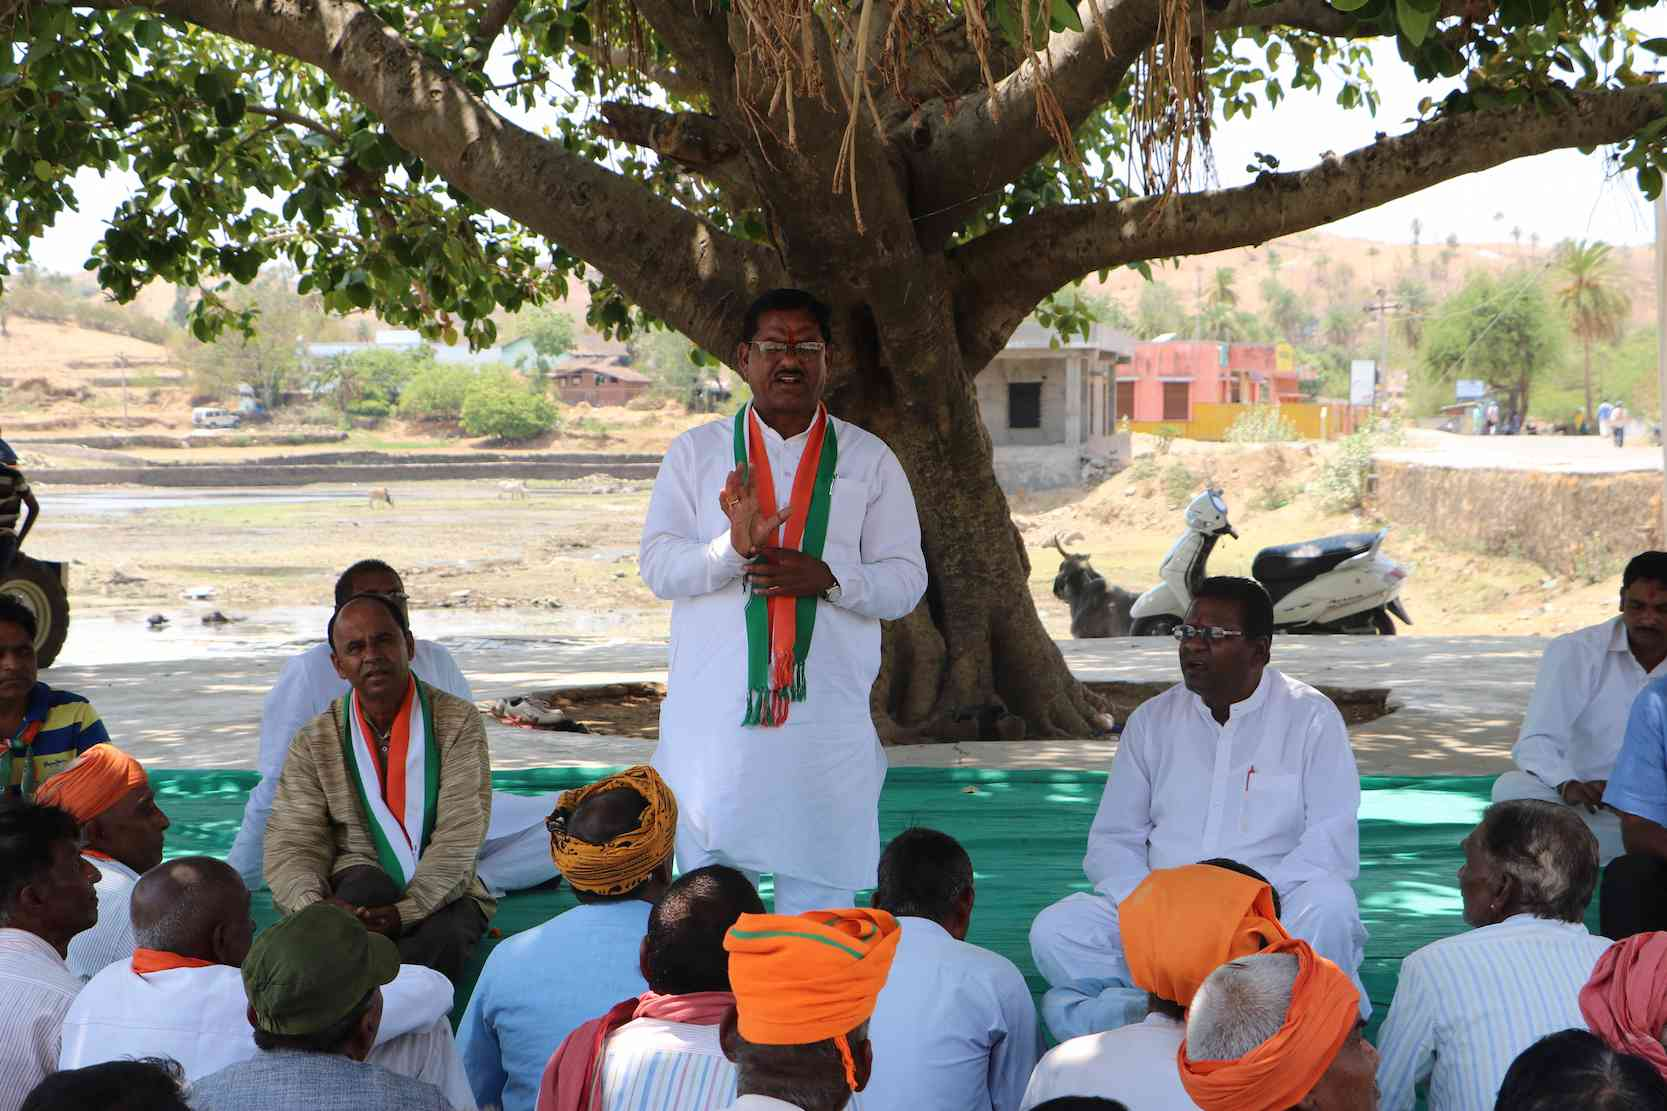 The Congress candidate Raghuvir Meena addressed a meeting in Kanpur village.